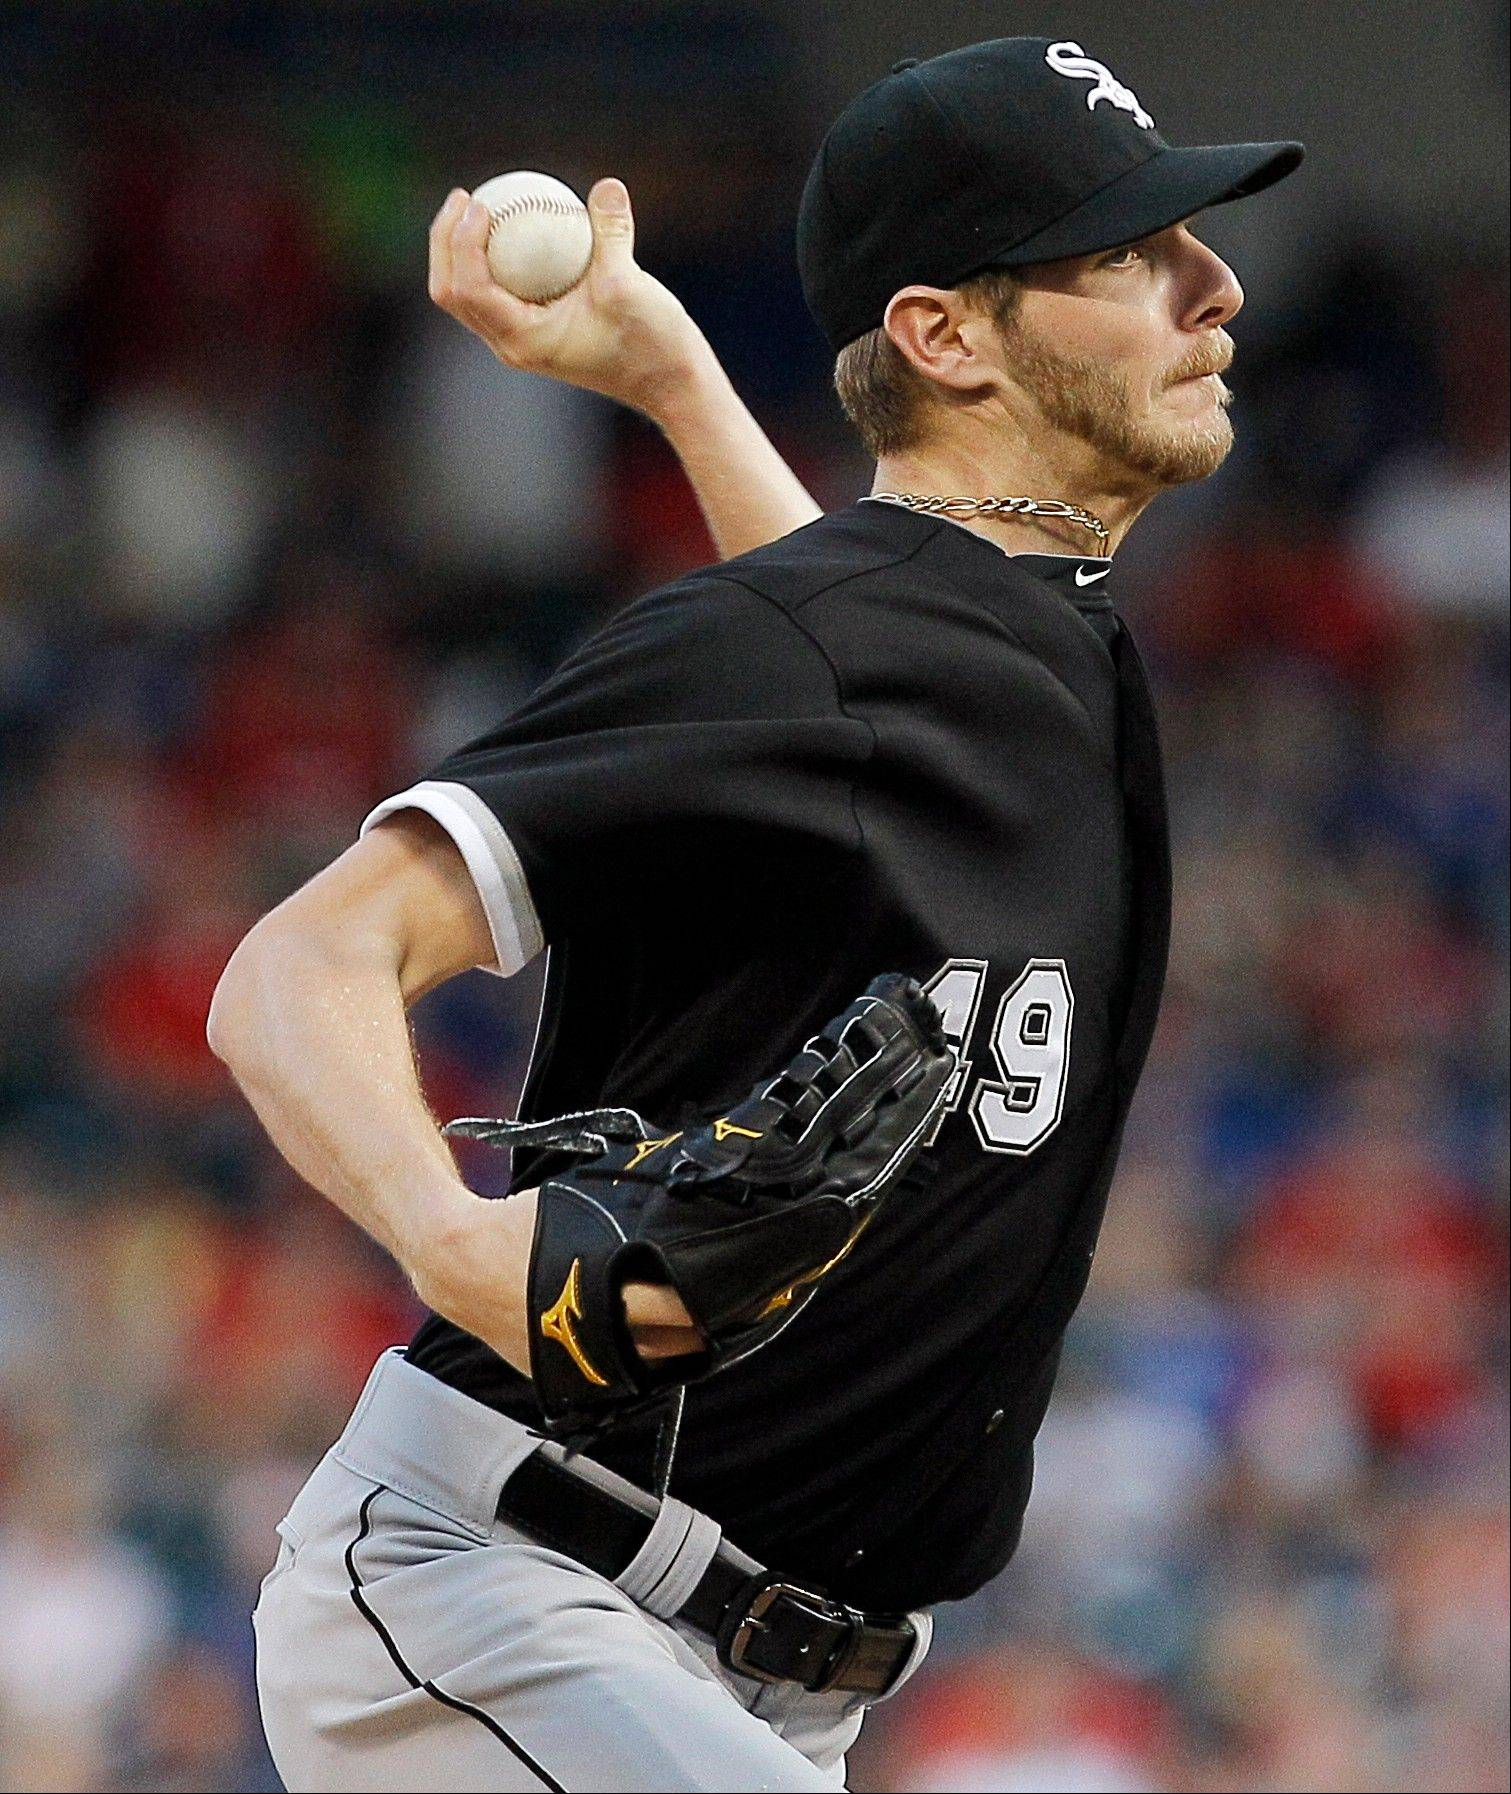 Chicago White Sox starting pitcher Chris Sale (49) throws in the first inning of a baseball game against the Texas Rangers in Arlington, Texas, Wednesday, May 1, 2013. (AP Photo/Brandon Wade)